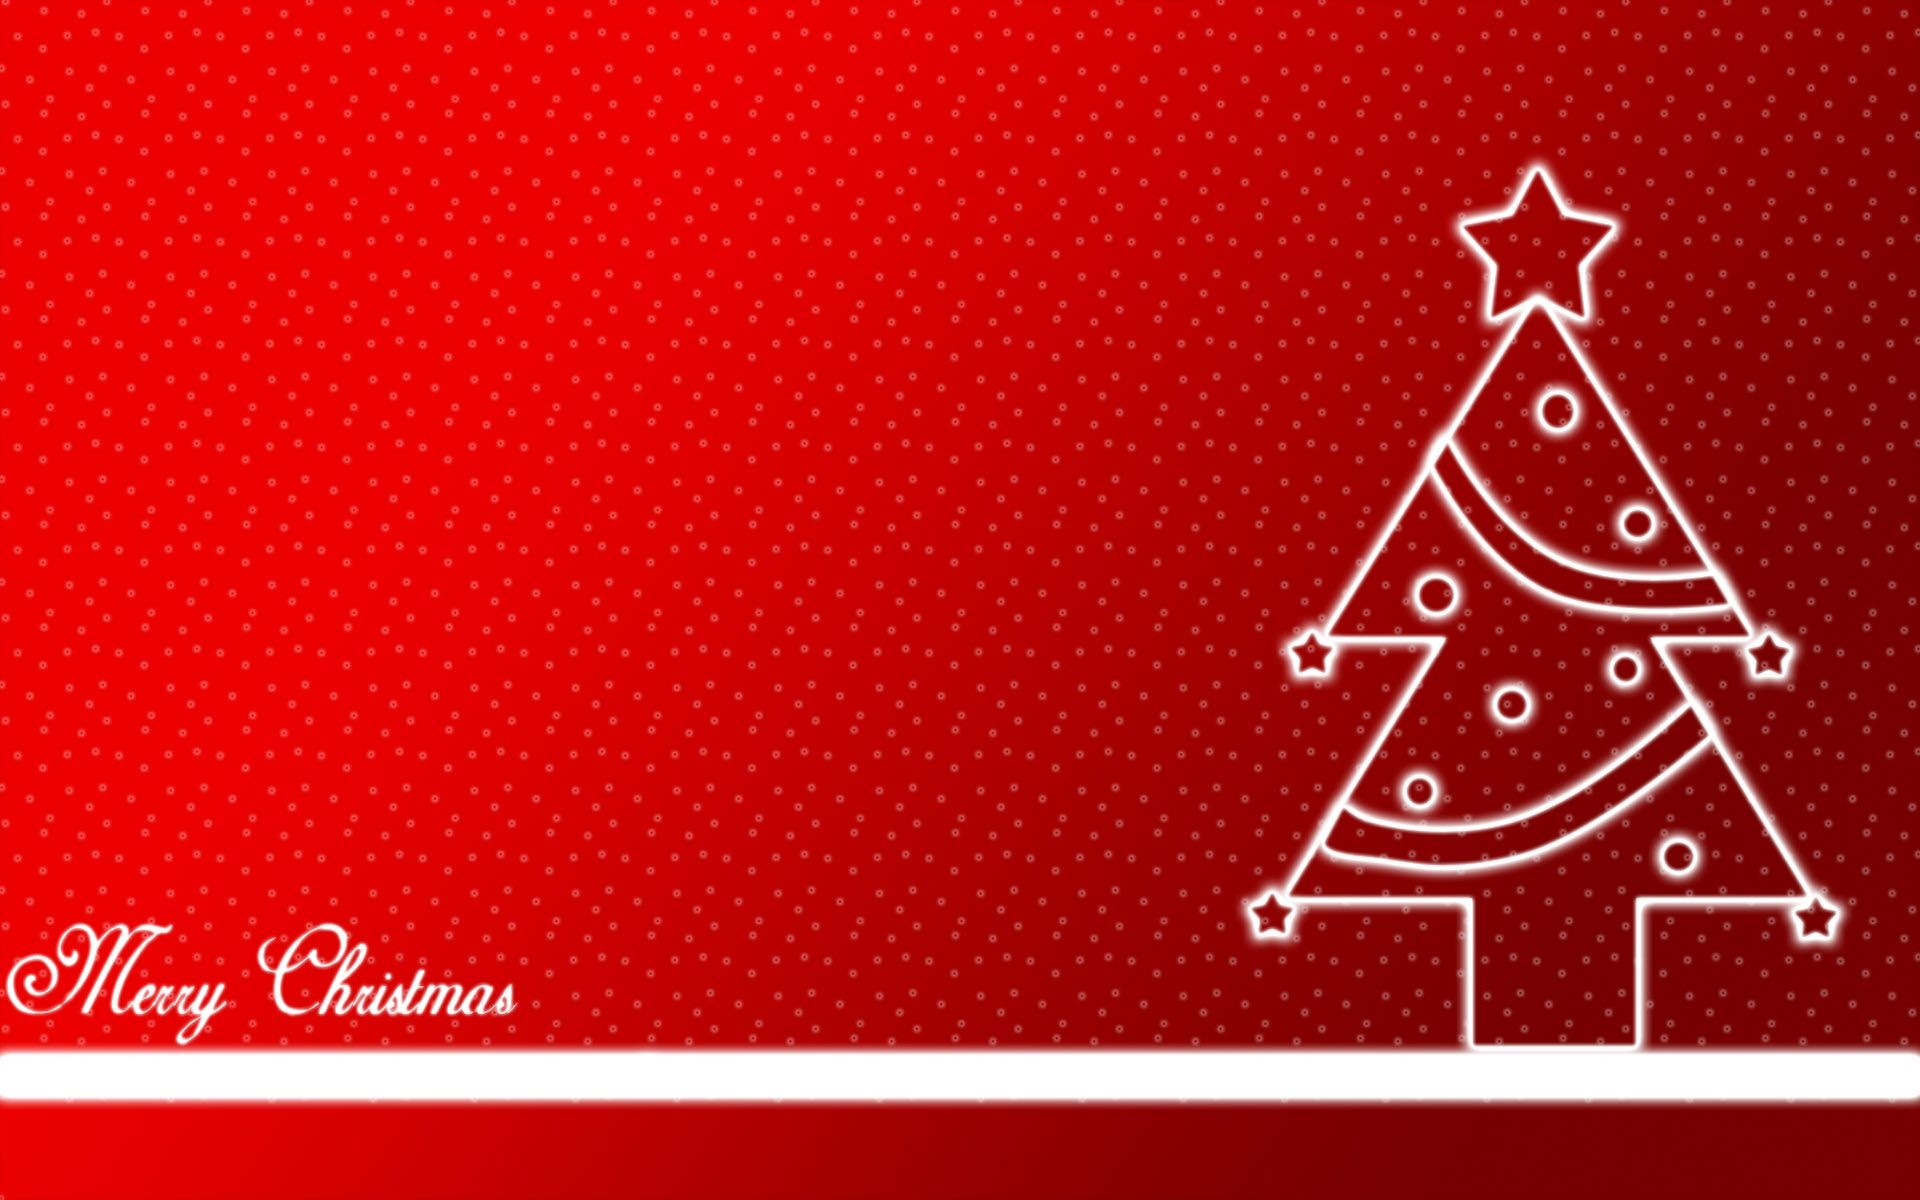 merry christmas background download free cool hd wallpapers